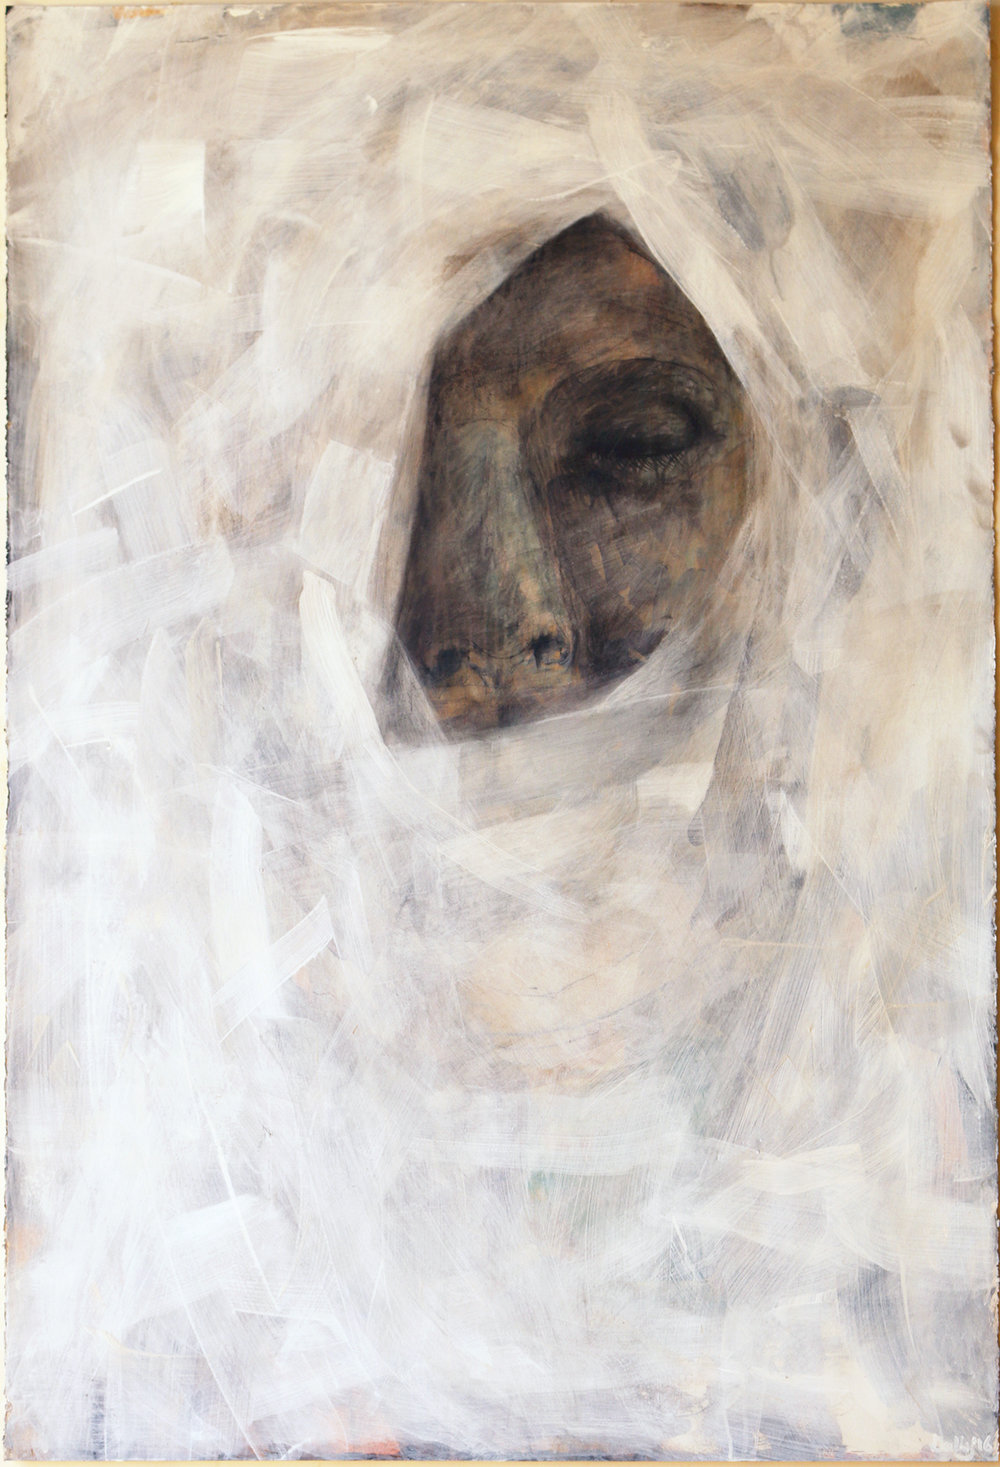 veiled figure